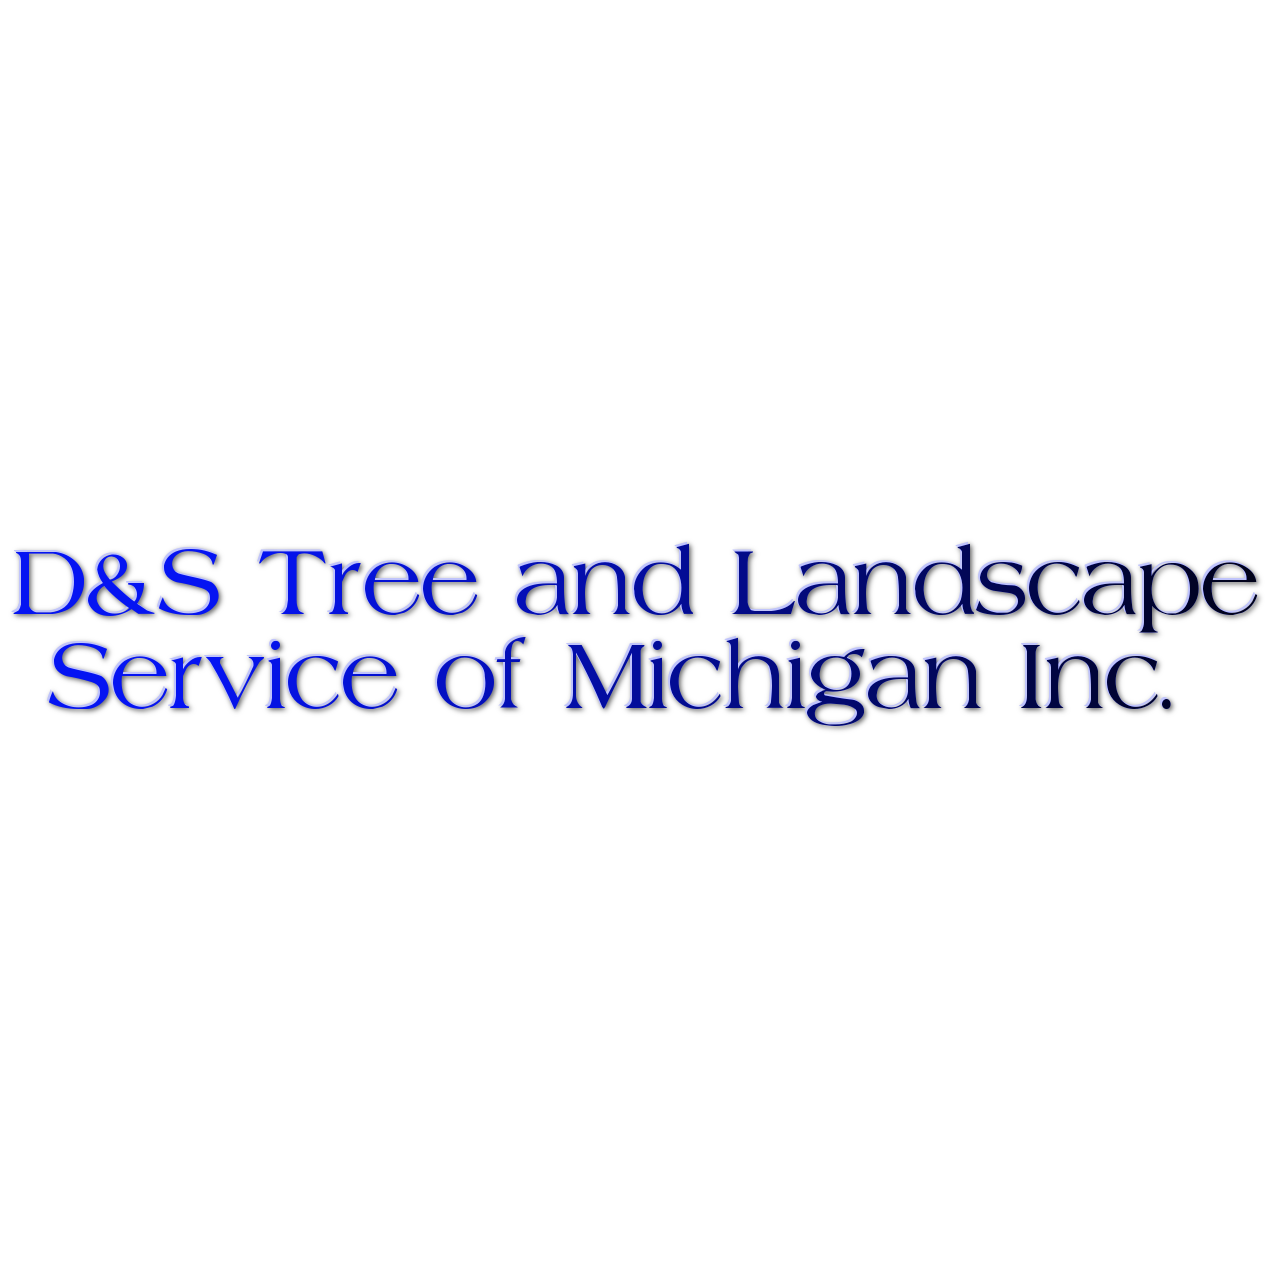 D&S Tree and Landscape Service of Michigan Inc.